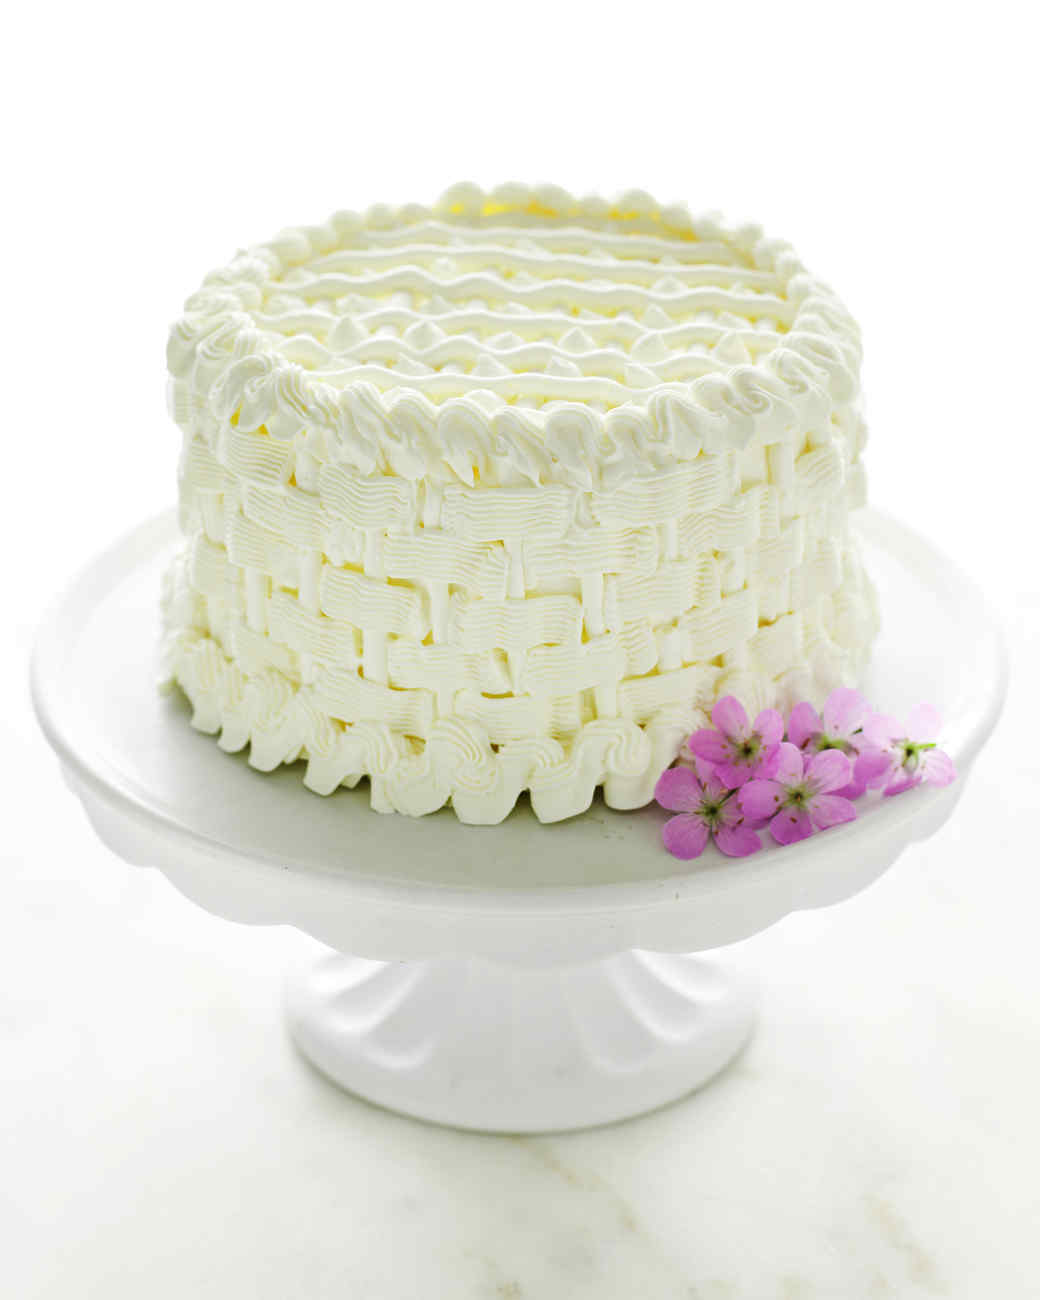 Orange-Almond Cake with Buttercream Frosting